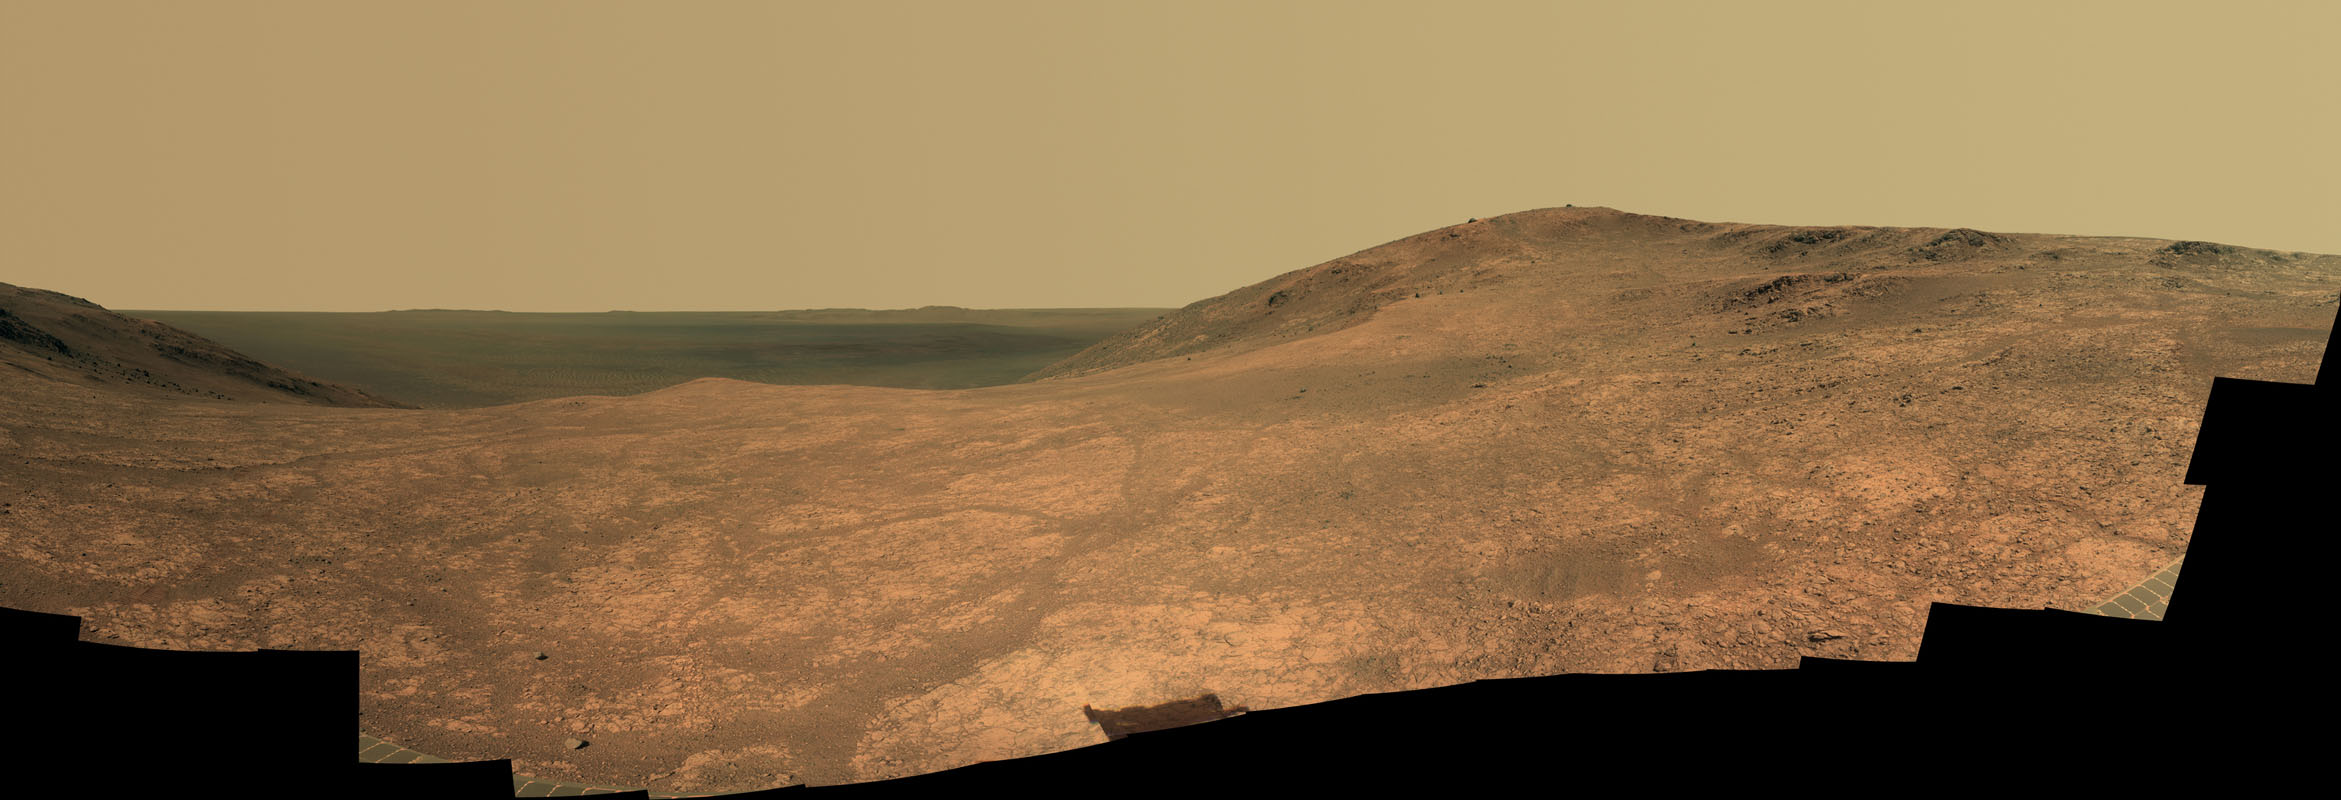 Space Images Mars Rover Opportunity S Panorama Of